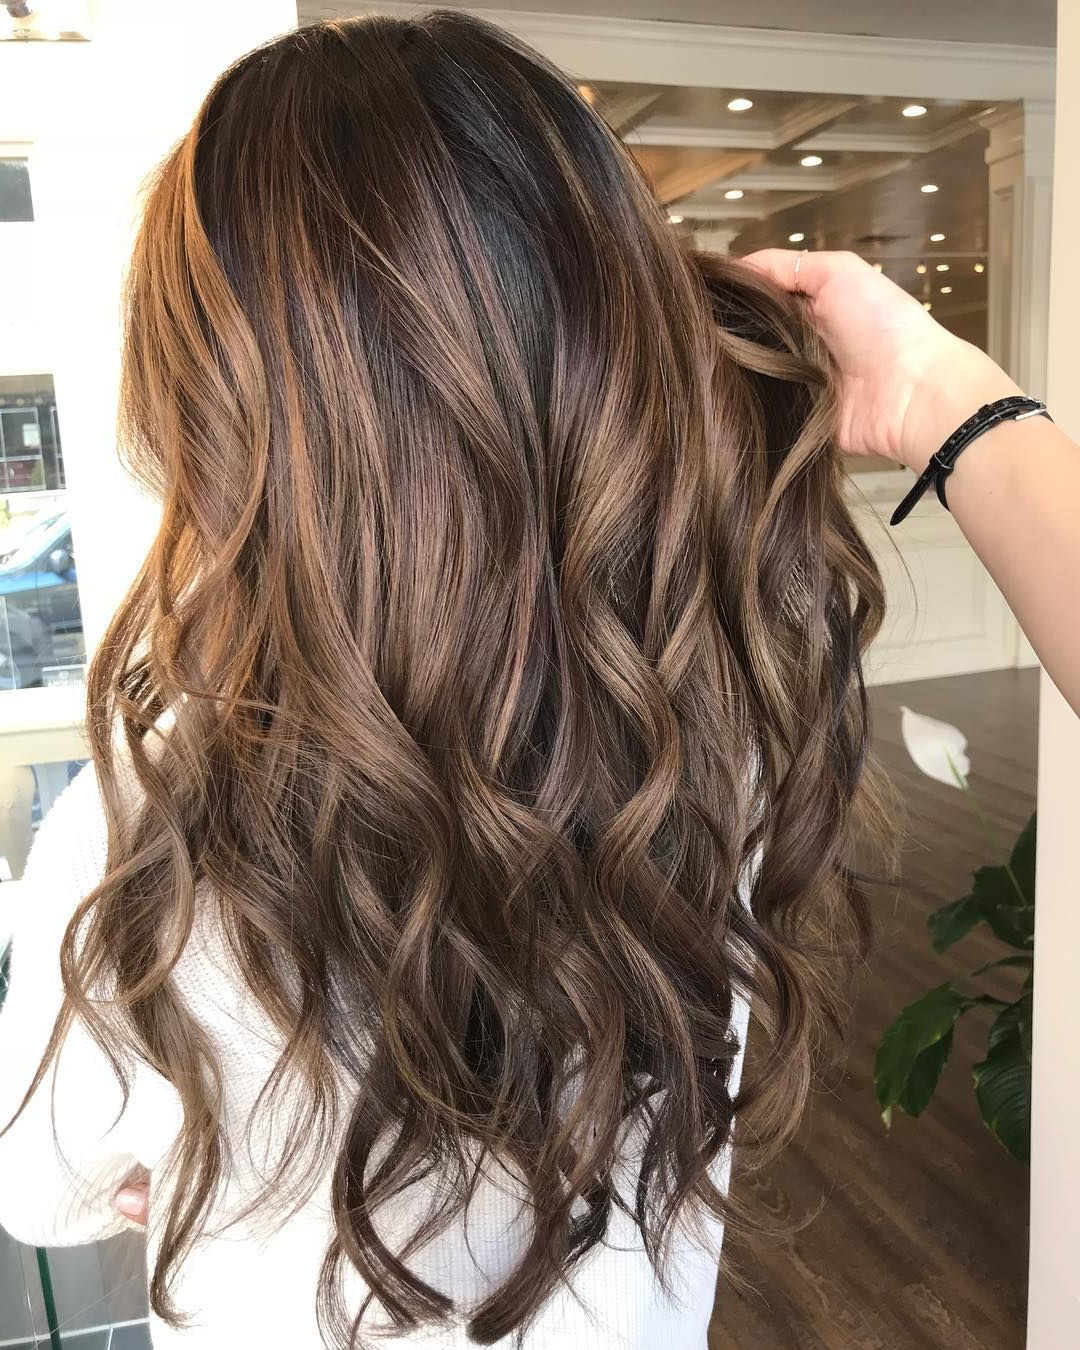 Hair Styles Inside 2018 Curly Golden Brown Balayage Long Hairstyles (View 14 of 20)